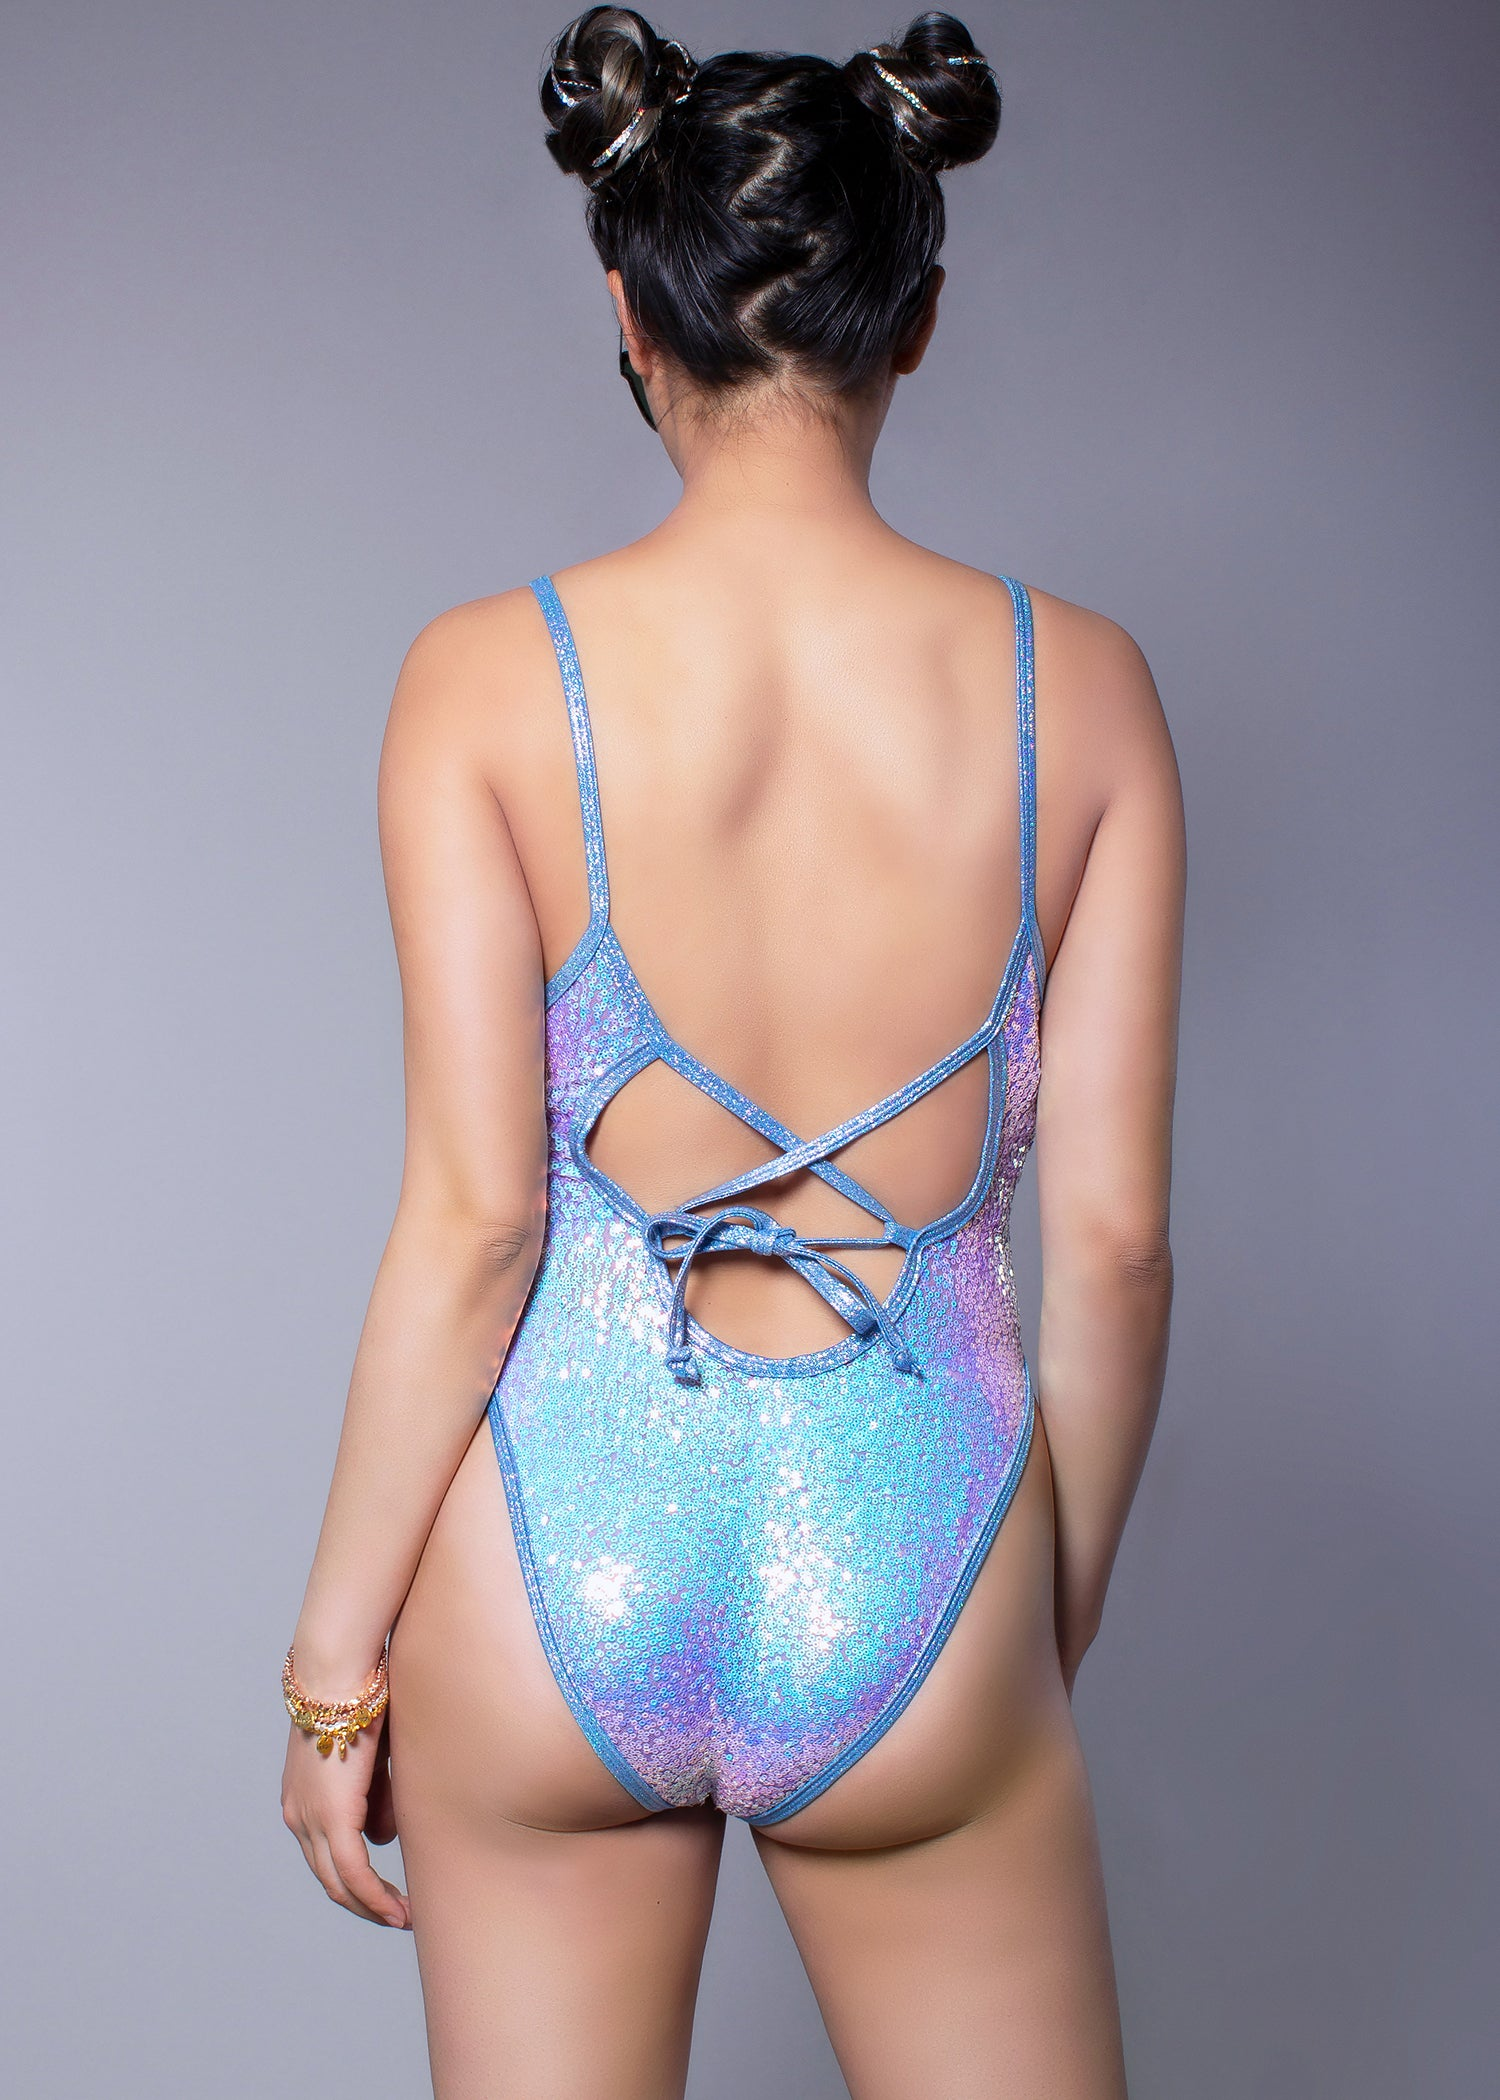 J Valentine Lavender Dreams Sequin Bodysuit